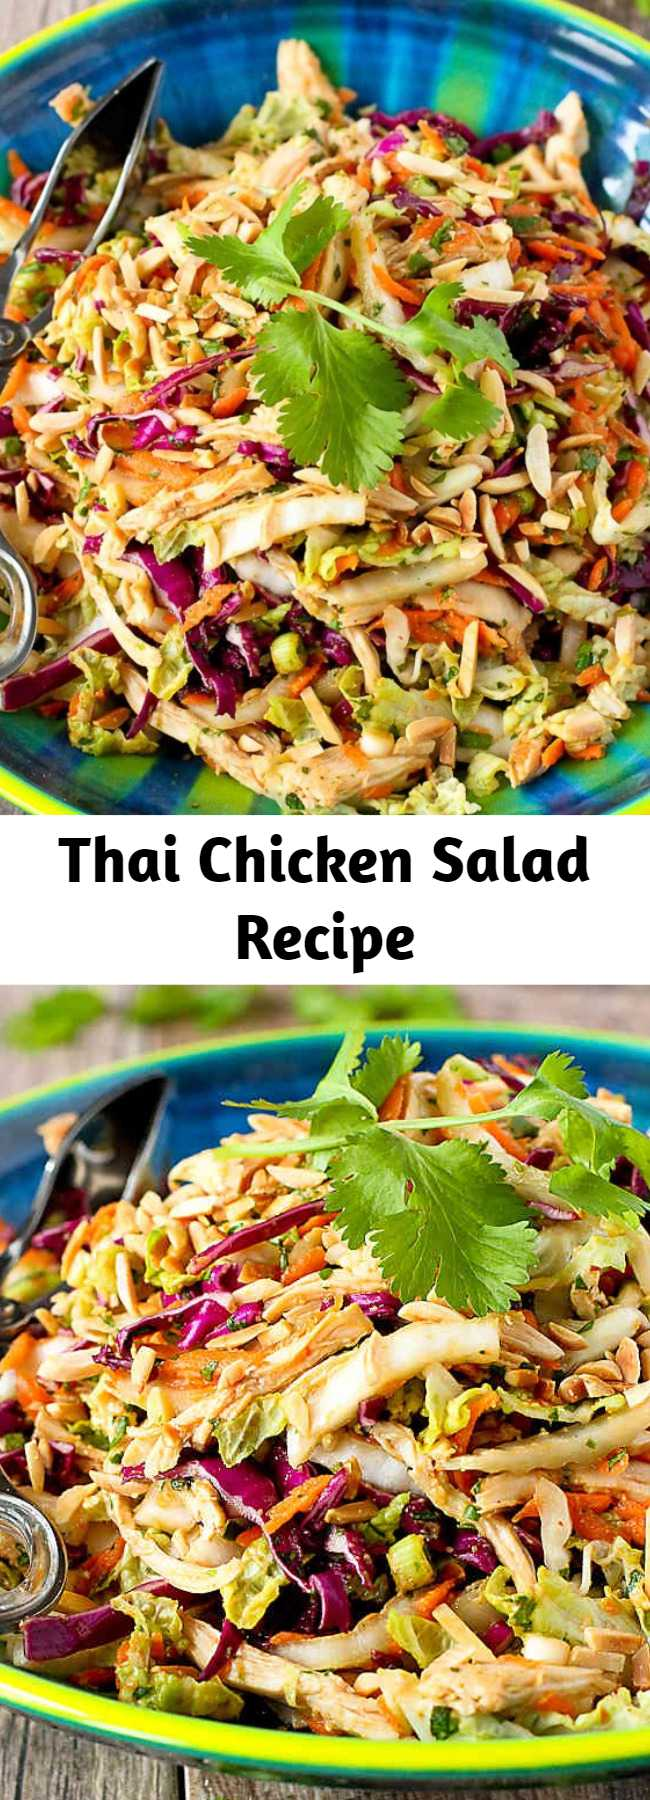 Thai Chicken Salad Recipe - This Thai Chicken Salad recipe is always the star of the show whenever it's served at our table. This easy, healthy salad come together in 15 to 20 minutes. 236 calories and 4 Weight Watchers Freestyle SP #chicken #weightwatchers #healthy #recipe